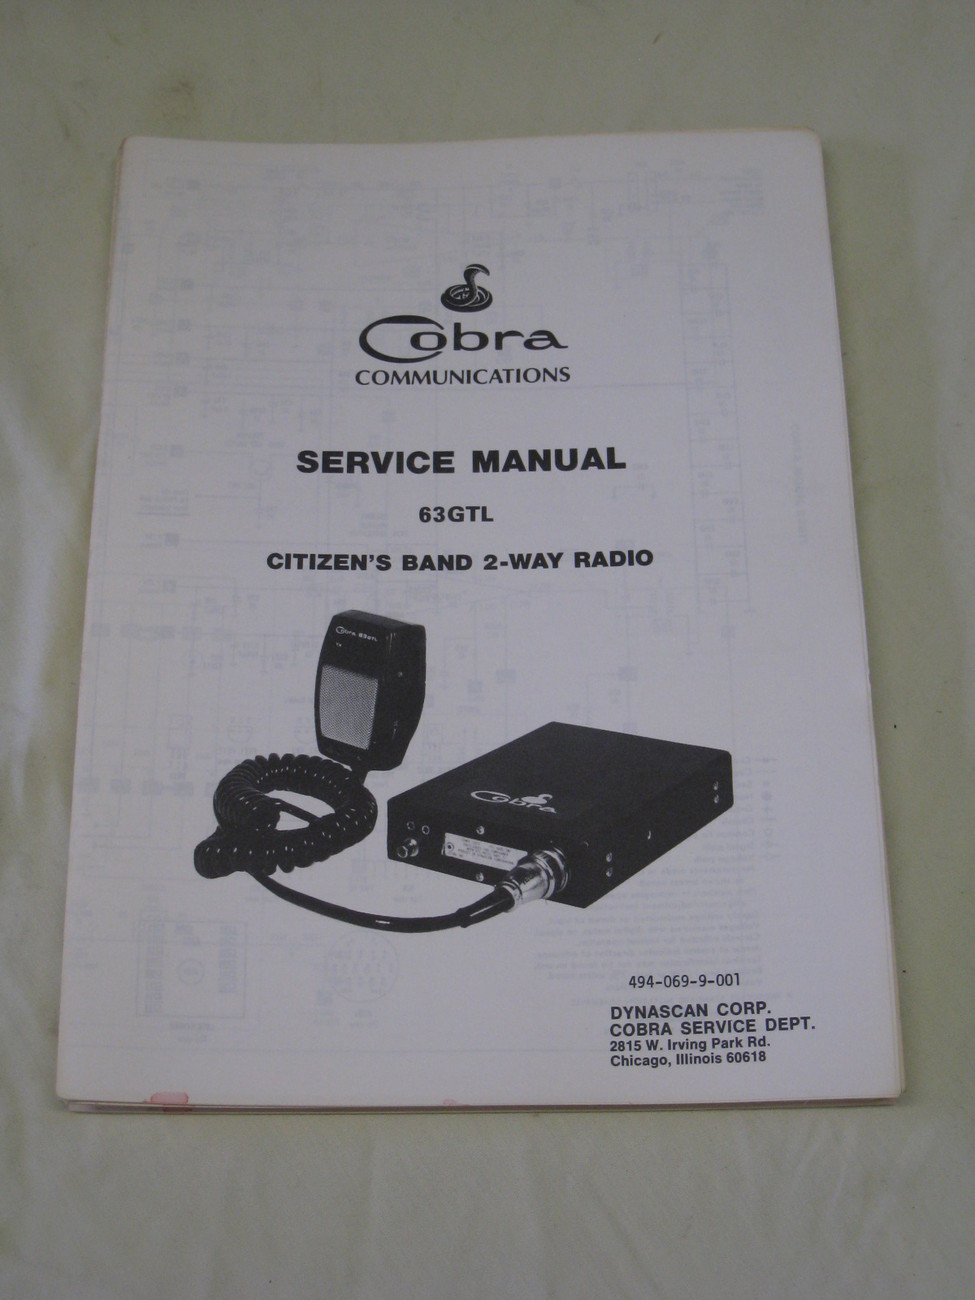 Cobra Communications Service Manual for a Cobra 63 GTL